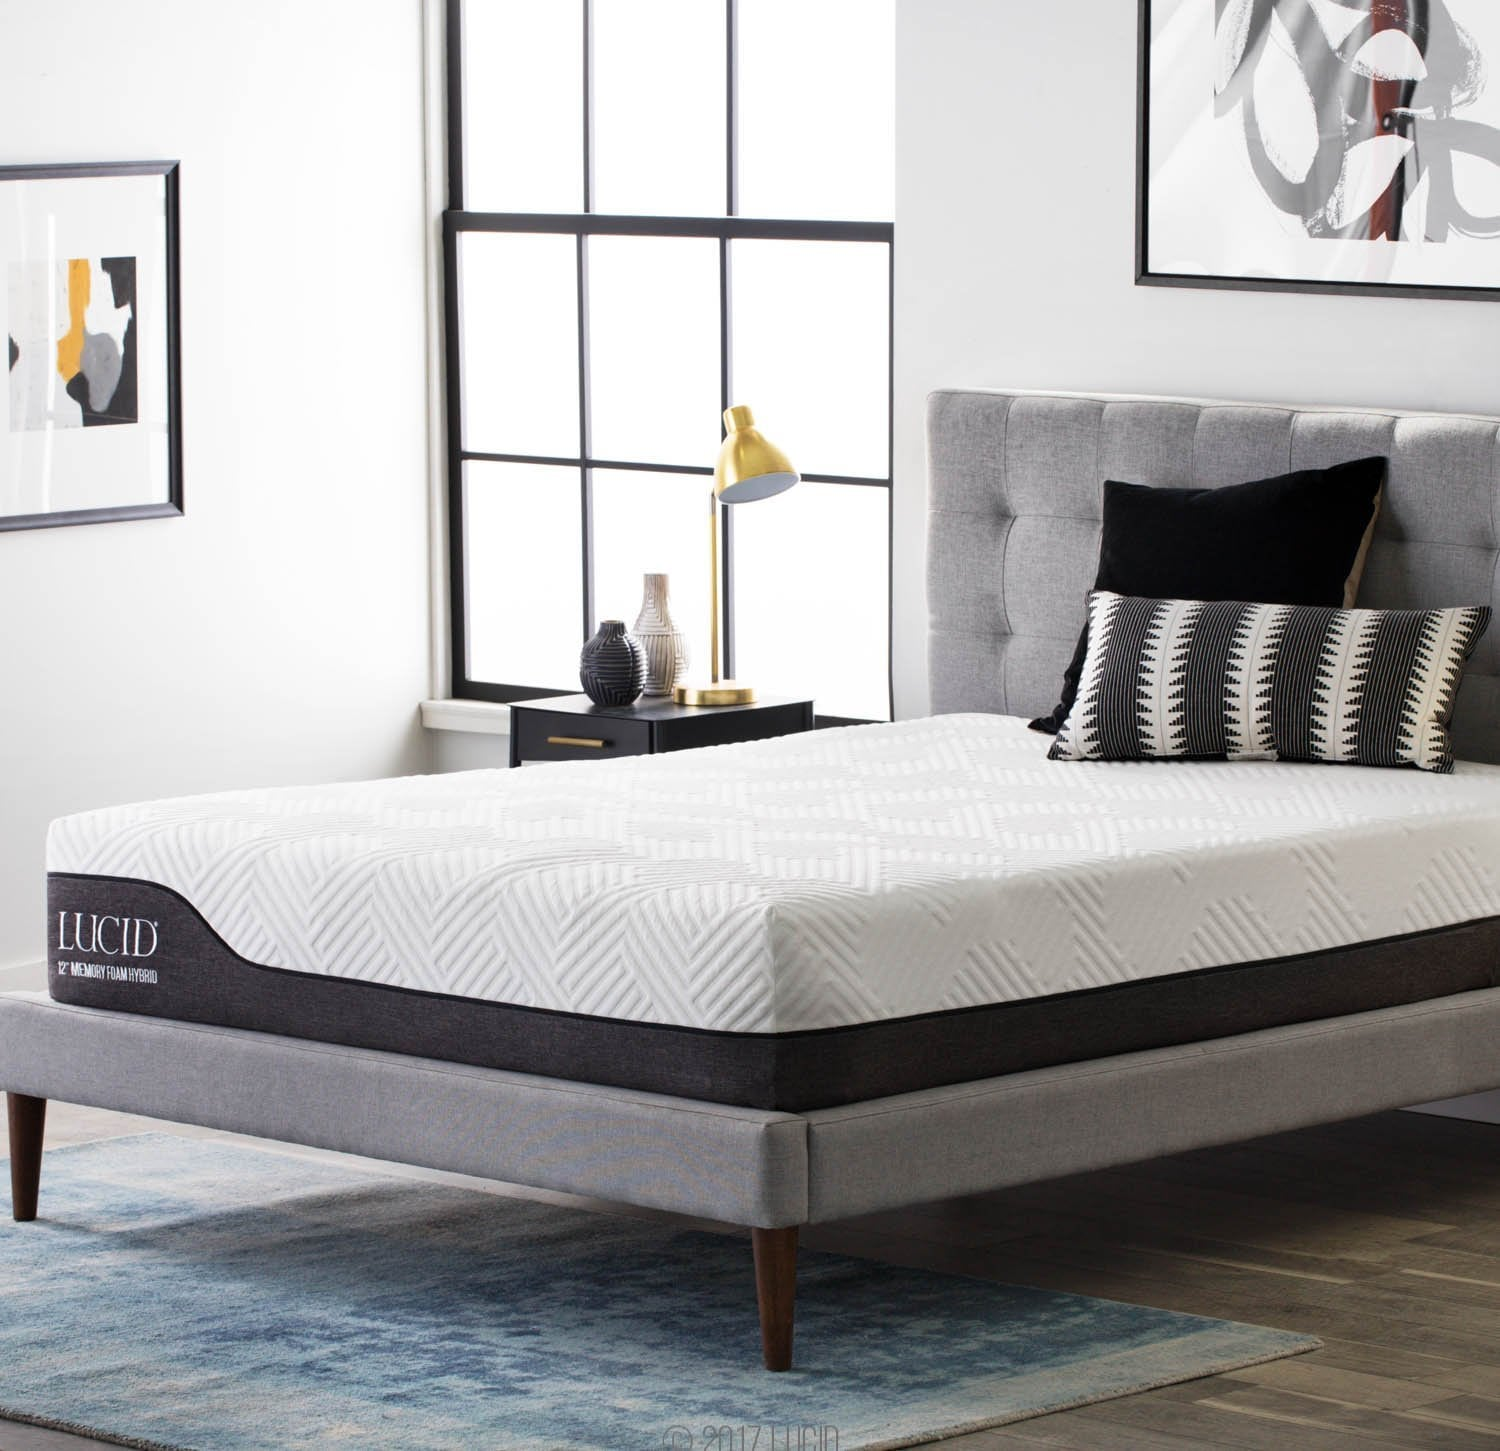 LUCID best hybrid mattress reviews by www.snoremagazine.com